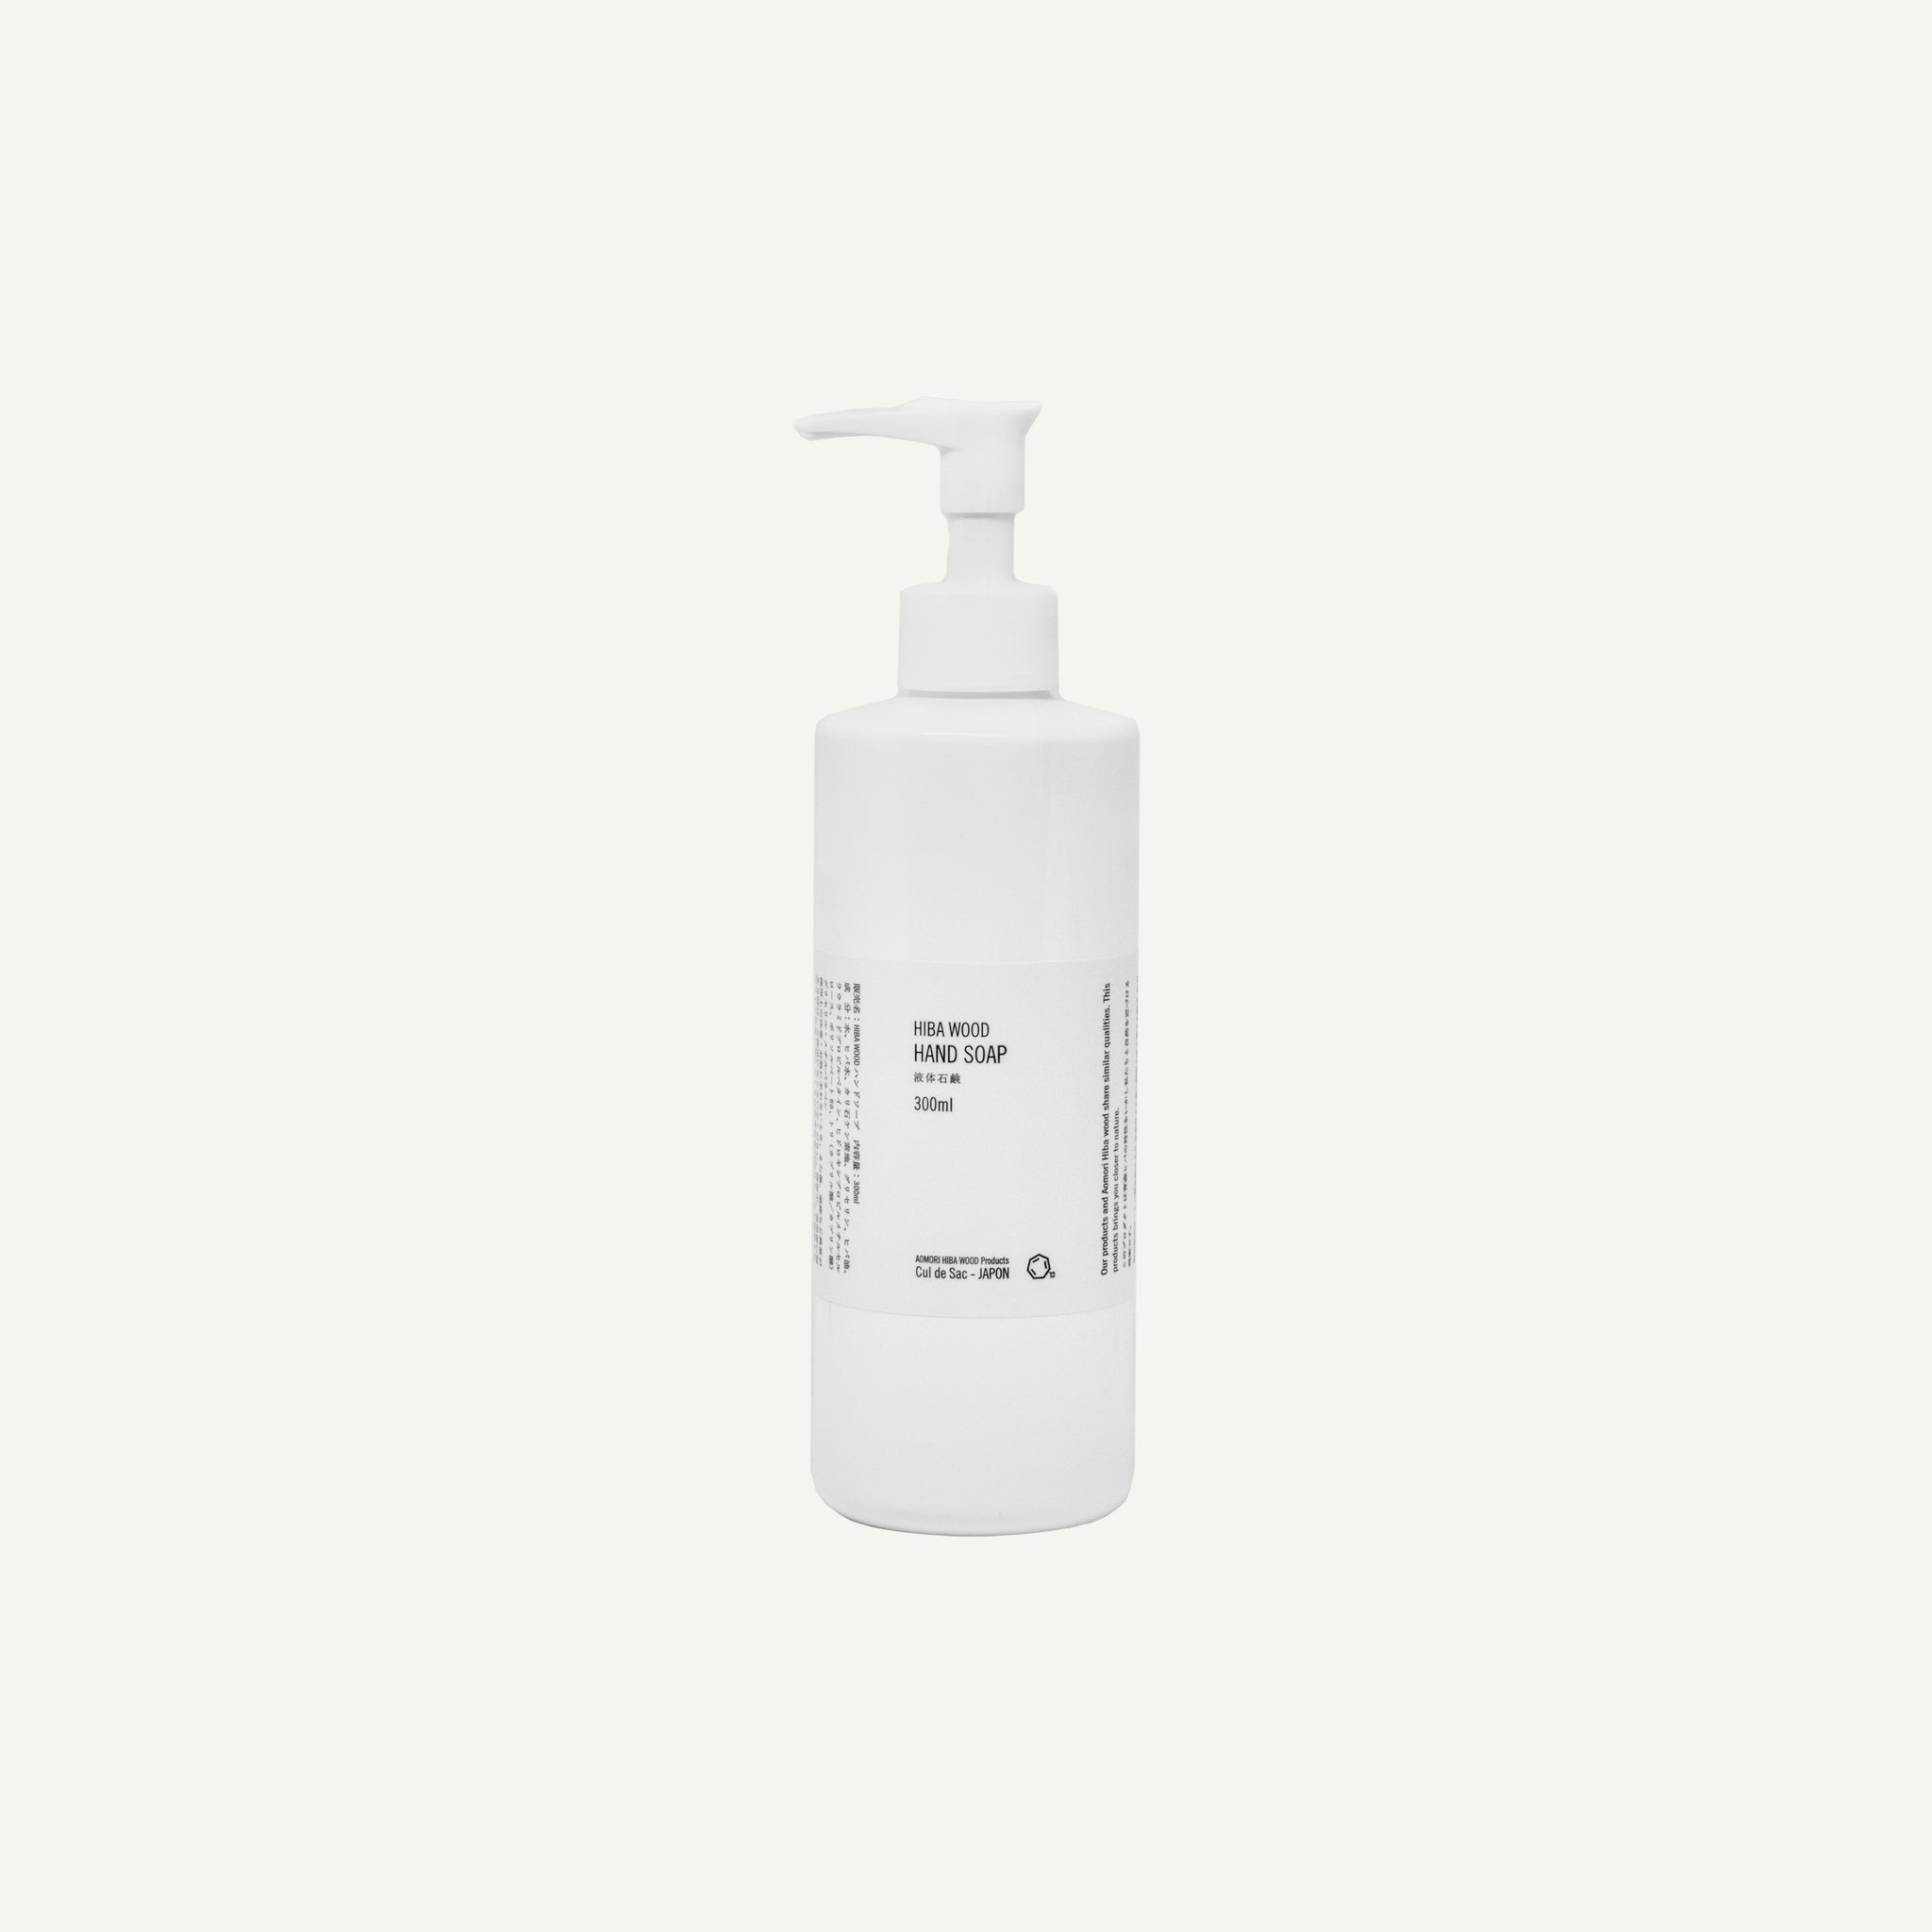 HIBA WOOD HAND SOAP